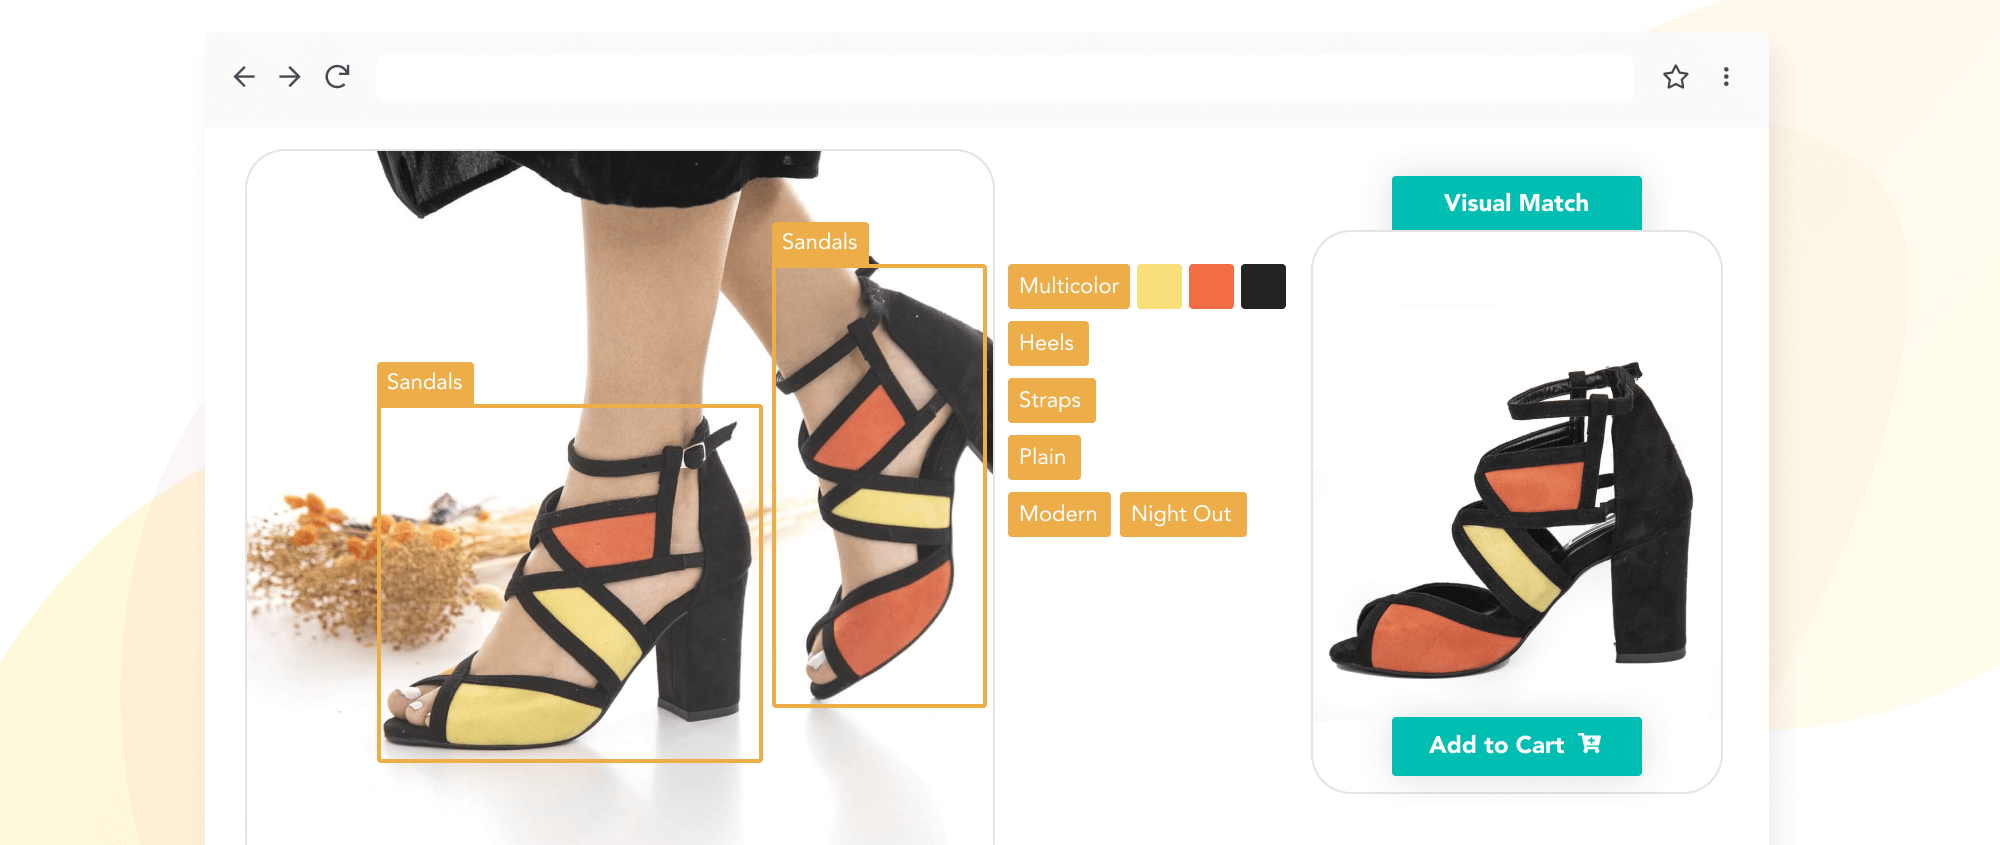 Multicolored sandals with automated tags and one visually similar sandal in stock